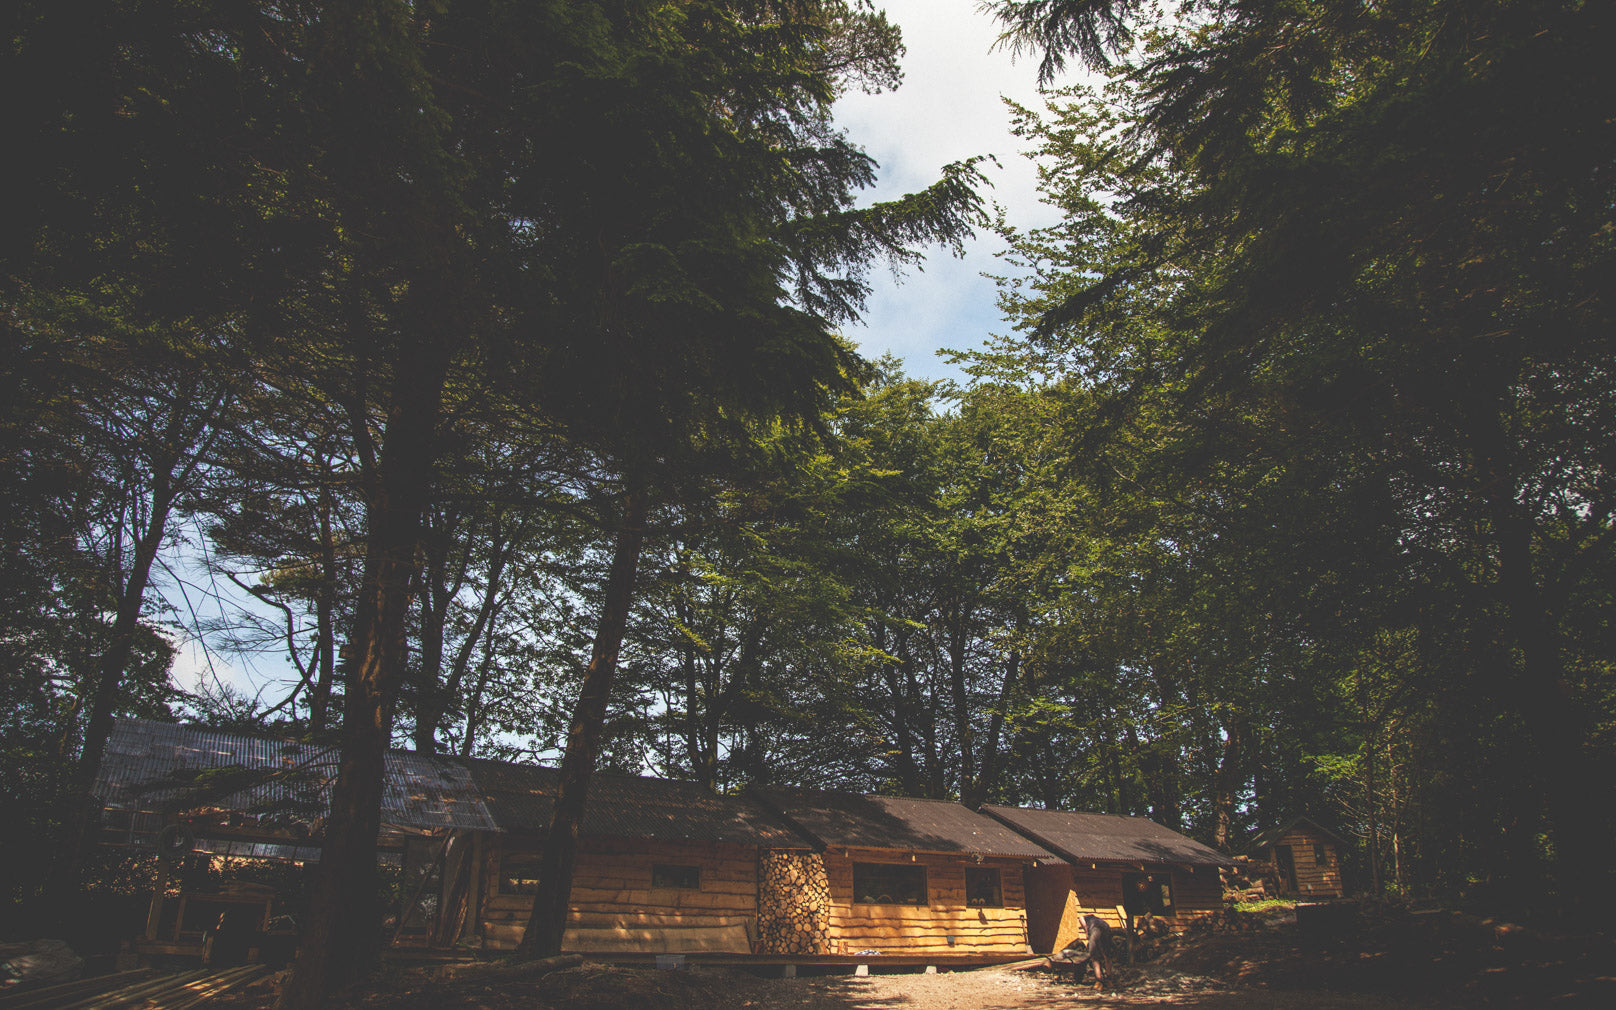 The Tom Raffield woodland workshop – a log cabin in the woods.